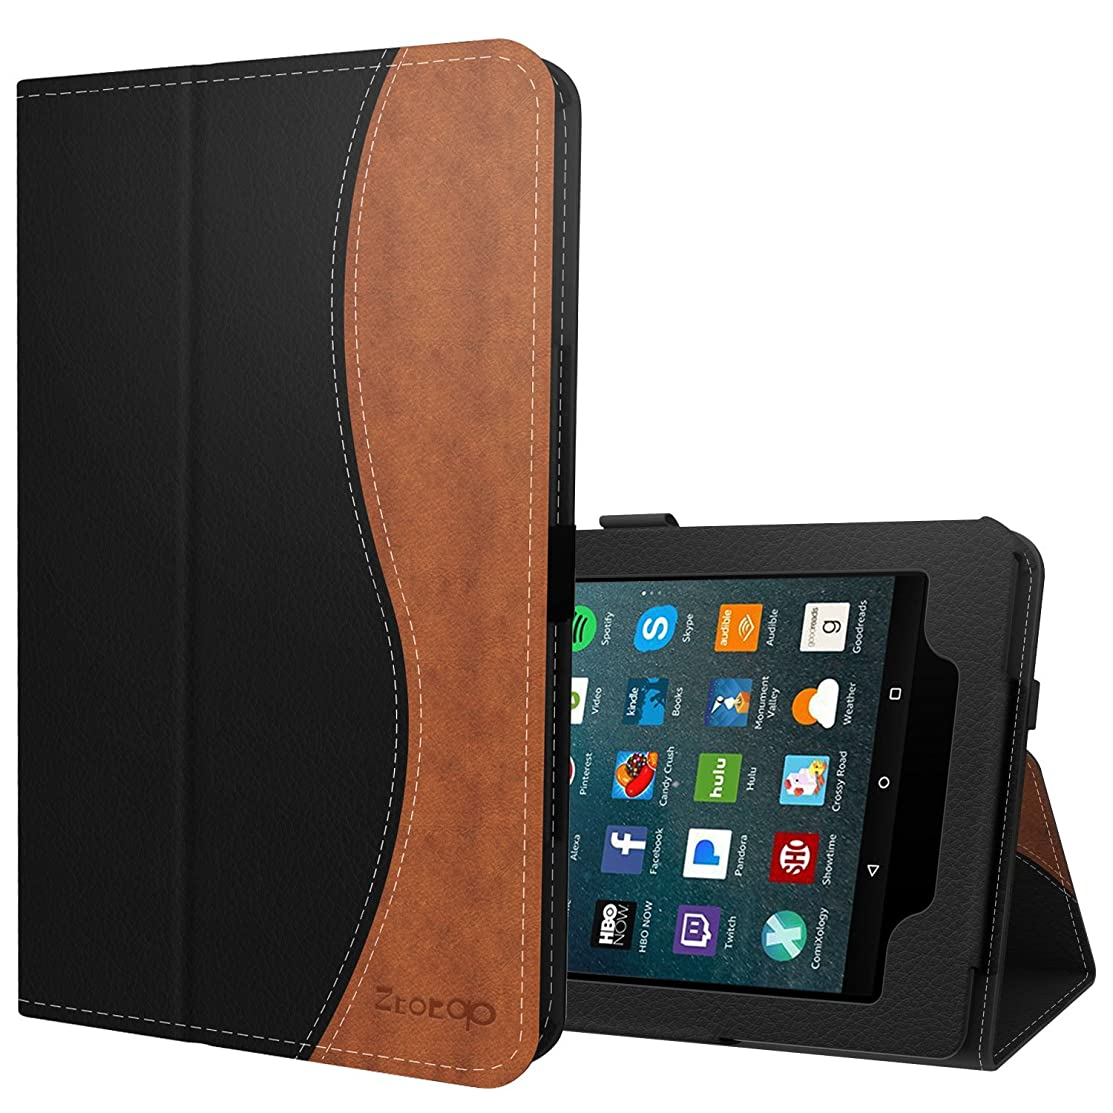 Ztotop Folio Case for All-New Amazon Fire 7 Tablet (7th Generation, 2017 Release) - Smart Cover Slim Folding Stand Case with Auto Wake/Sleep for Fire 7 Tablet,DualColor